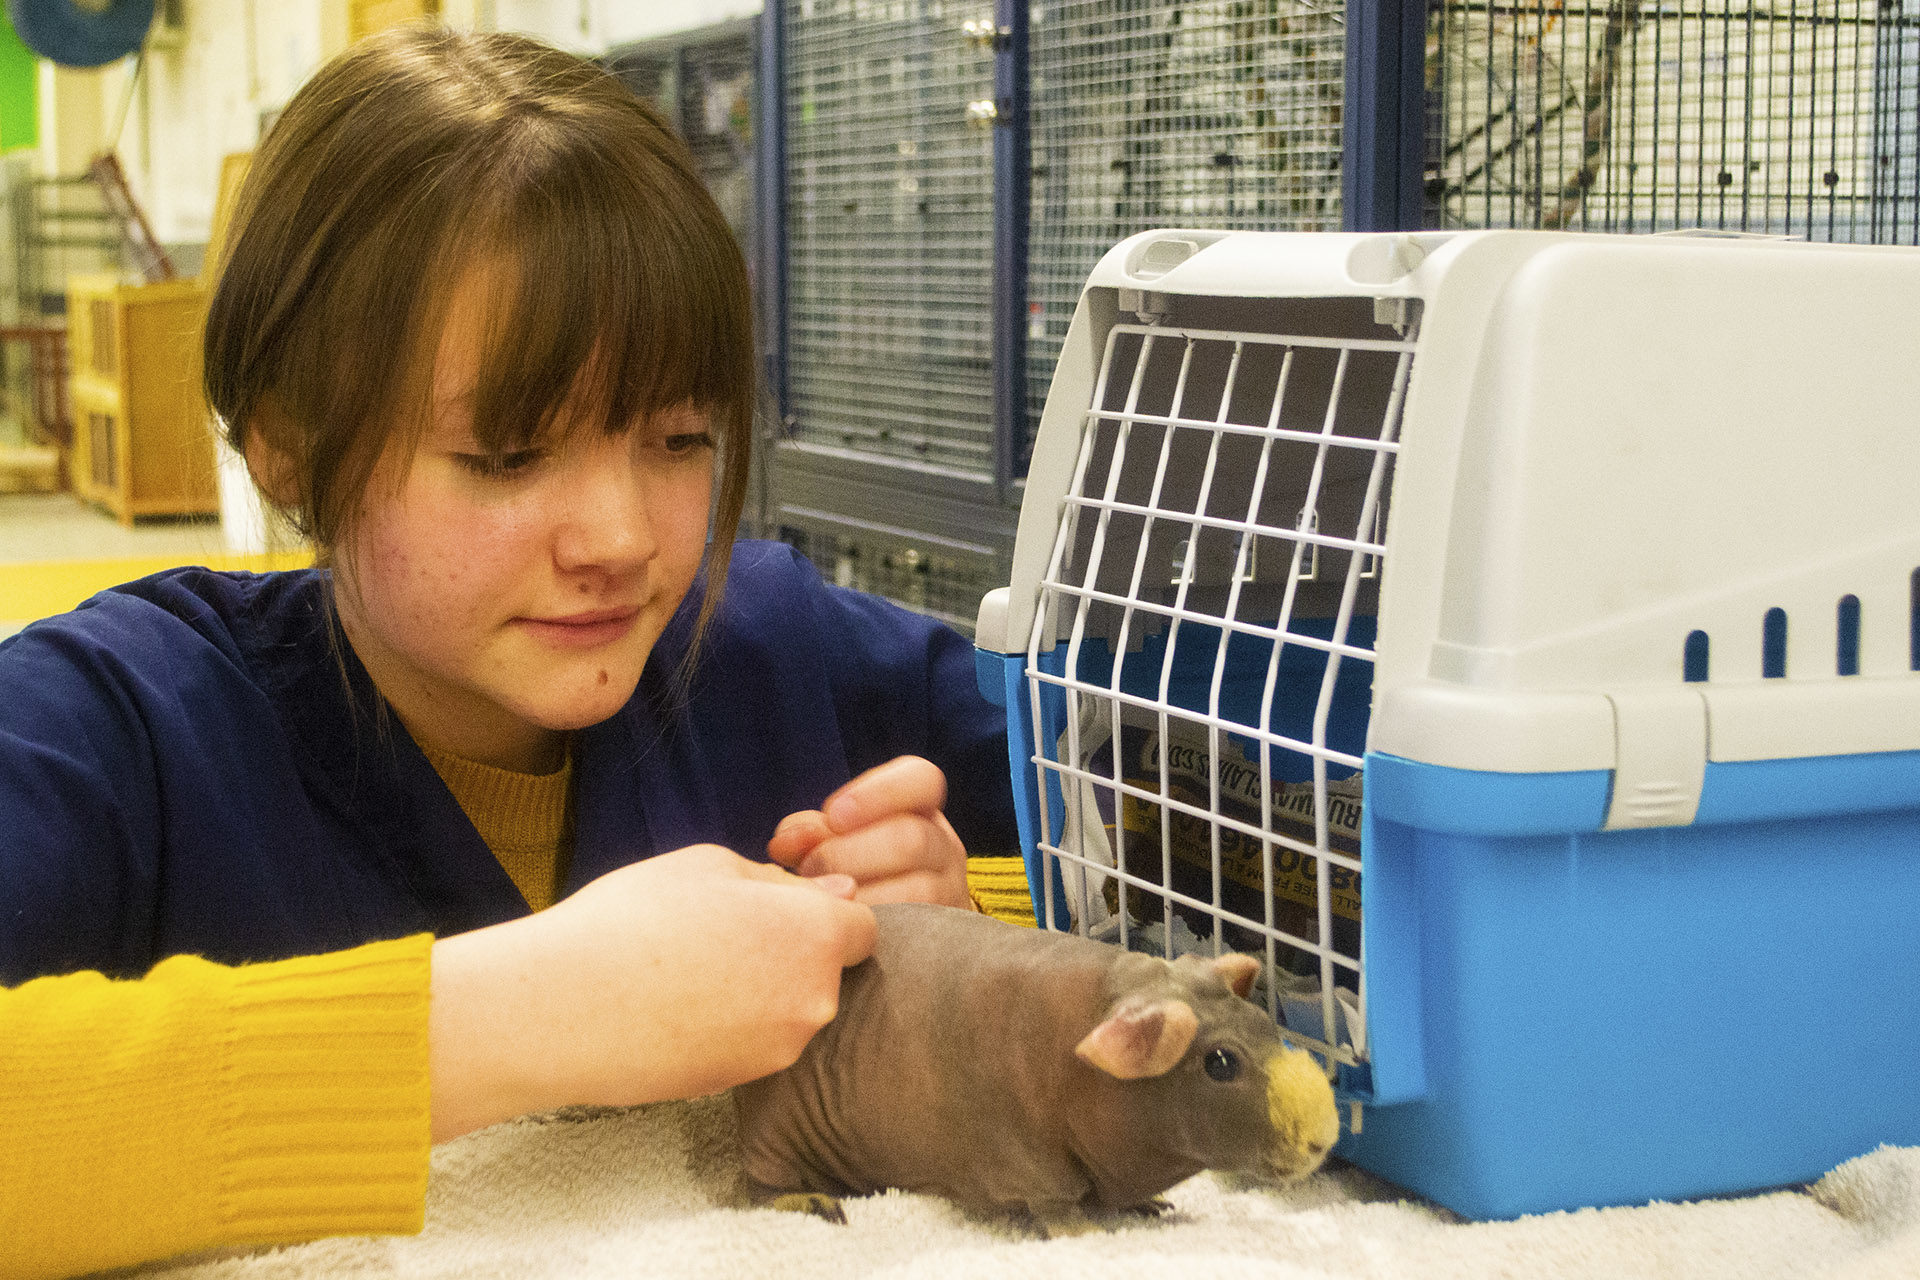 Animal Care. Student petting a small animal